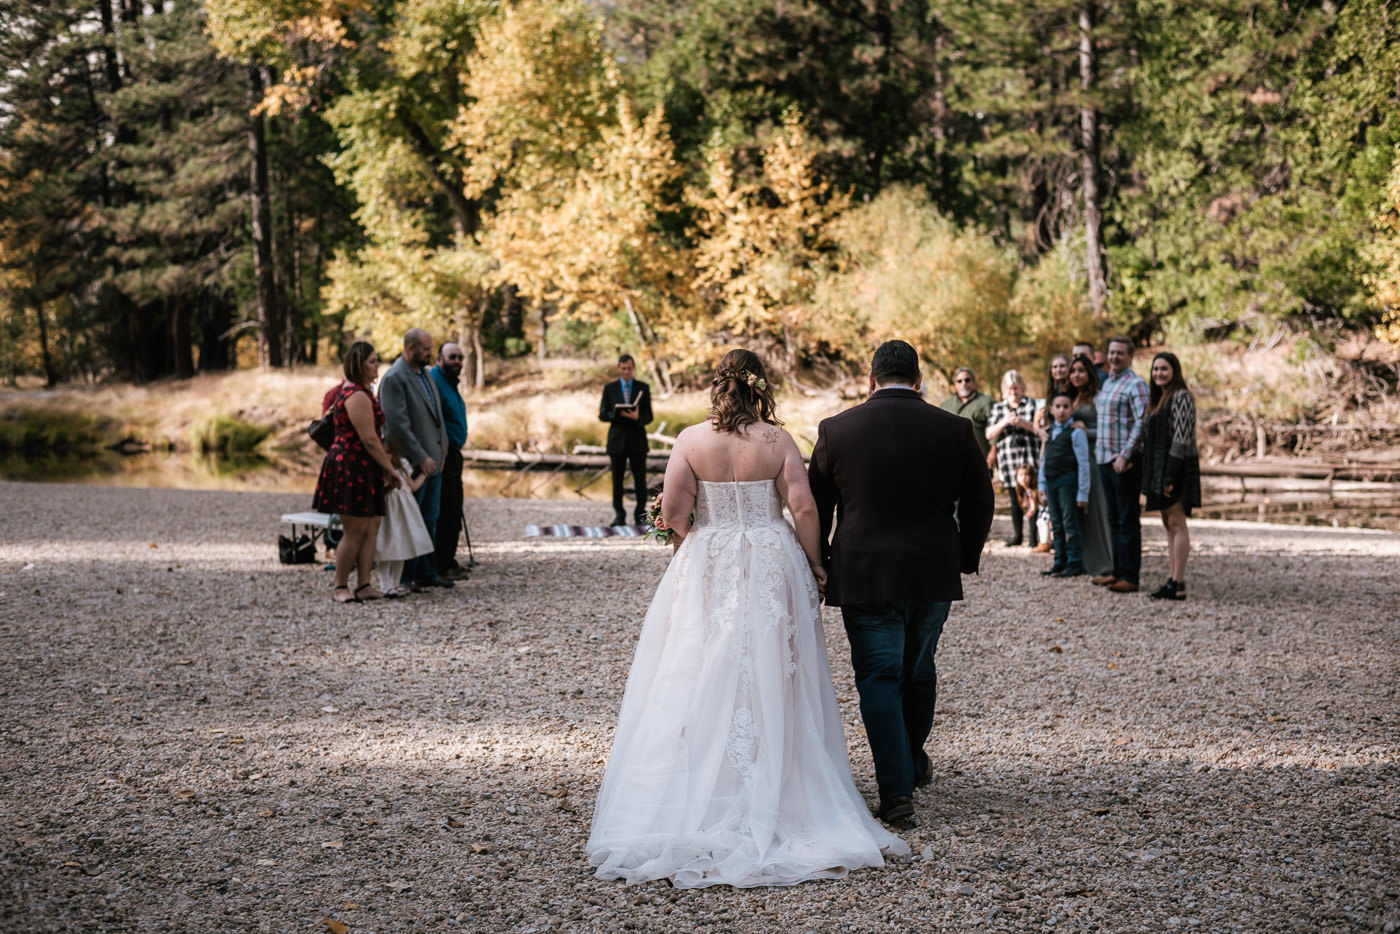 cathedral-beach-elopement-ceremony-yosemite-2.jpg